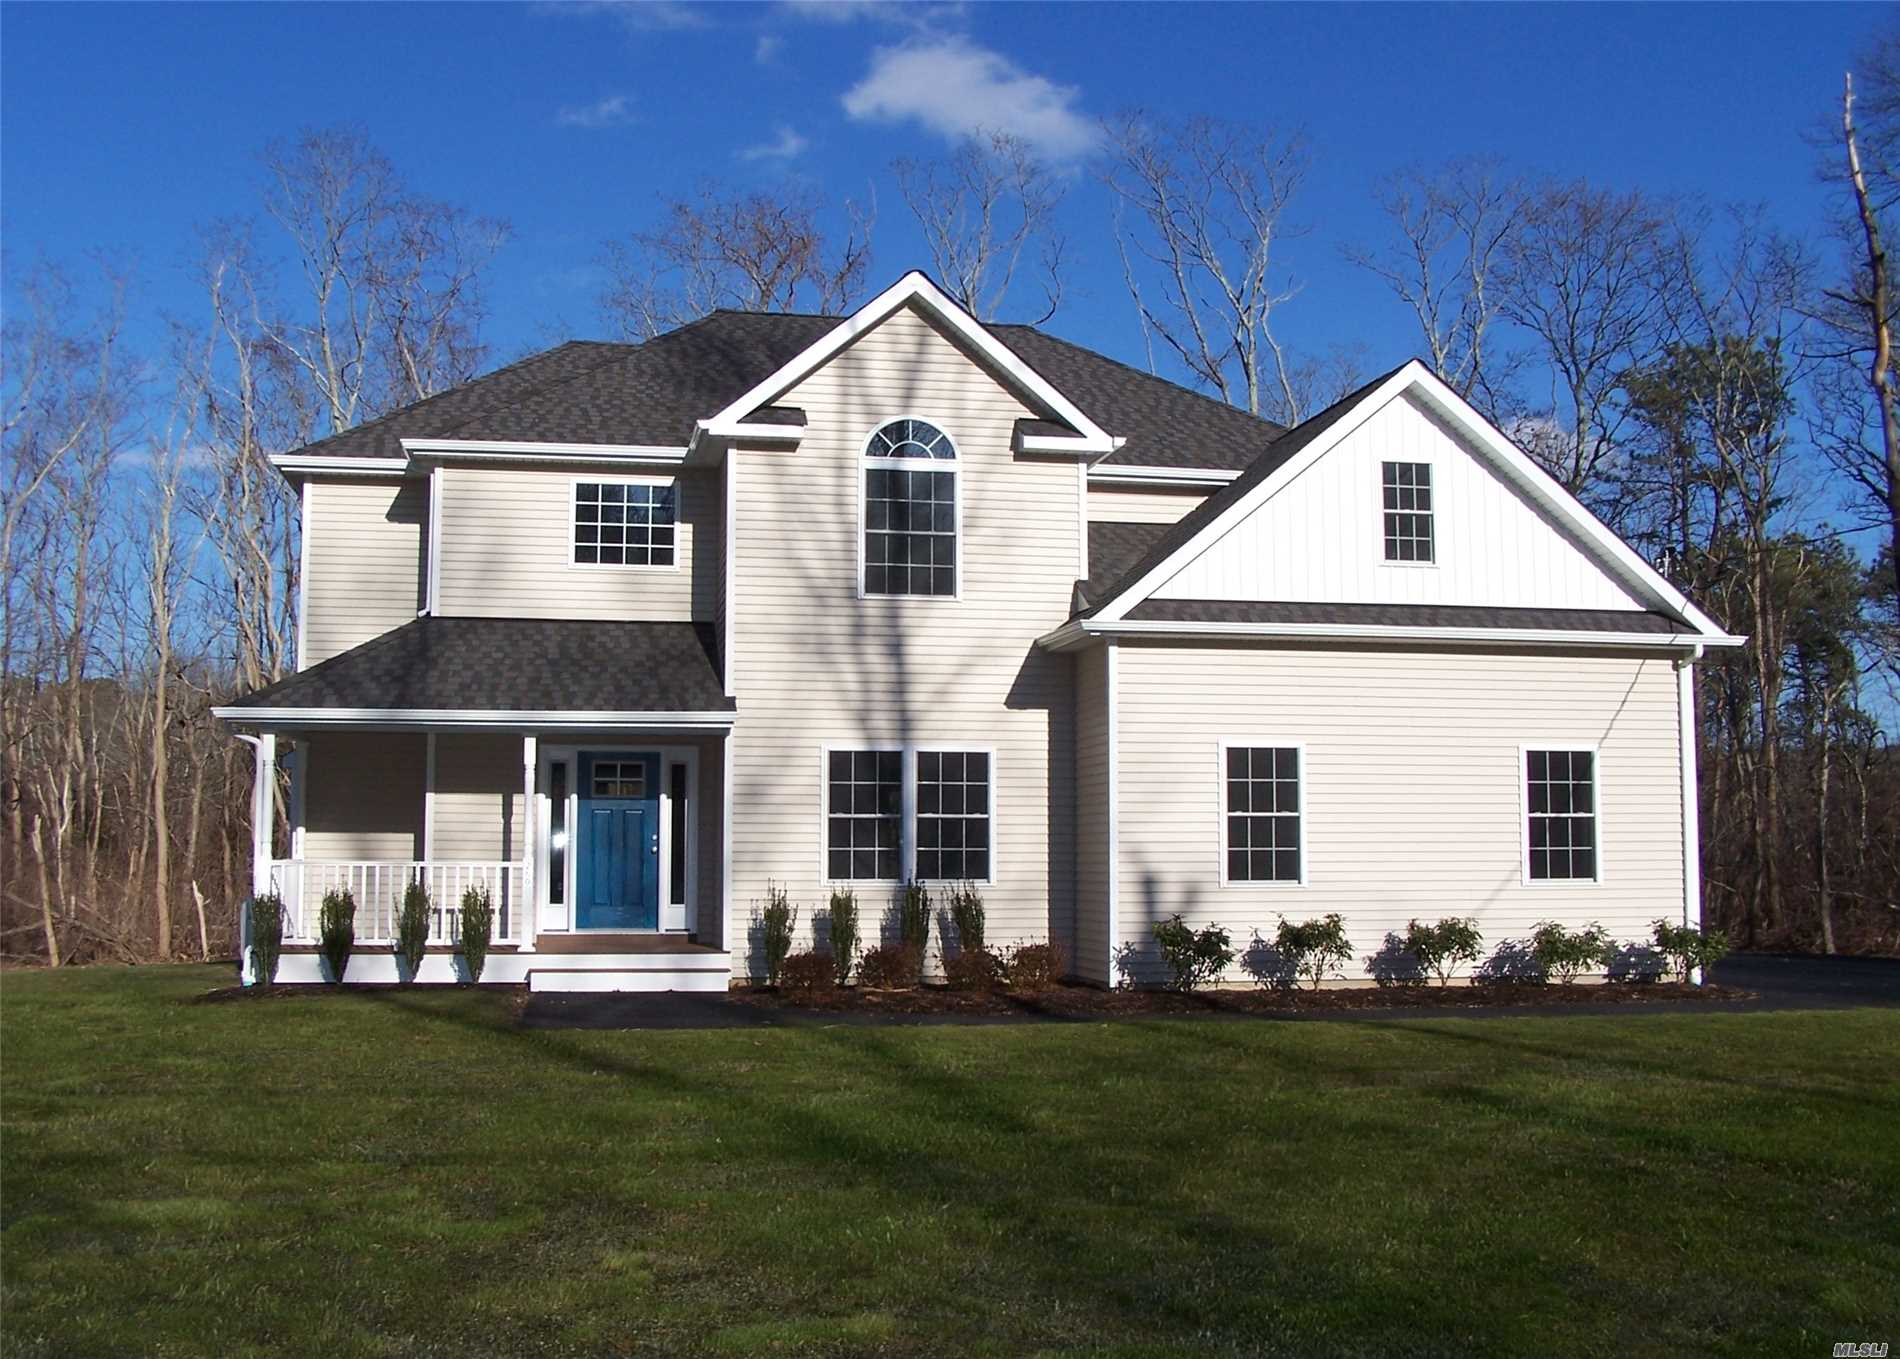 . New Construction Tan House, Great Location , On A 2 Acre Lot! Features Master Suite W/Full Bath & Walkin Closet, Granite Eat-In-Kitchen, Formal Dining Room, Gas Fp & Gas Stove Hardwood Floors On 1st Floor, Carpet On 2nd, Cac, Full Basement With Ose. Builder To Give Allotment For Appliances! $1800.